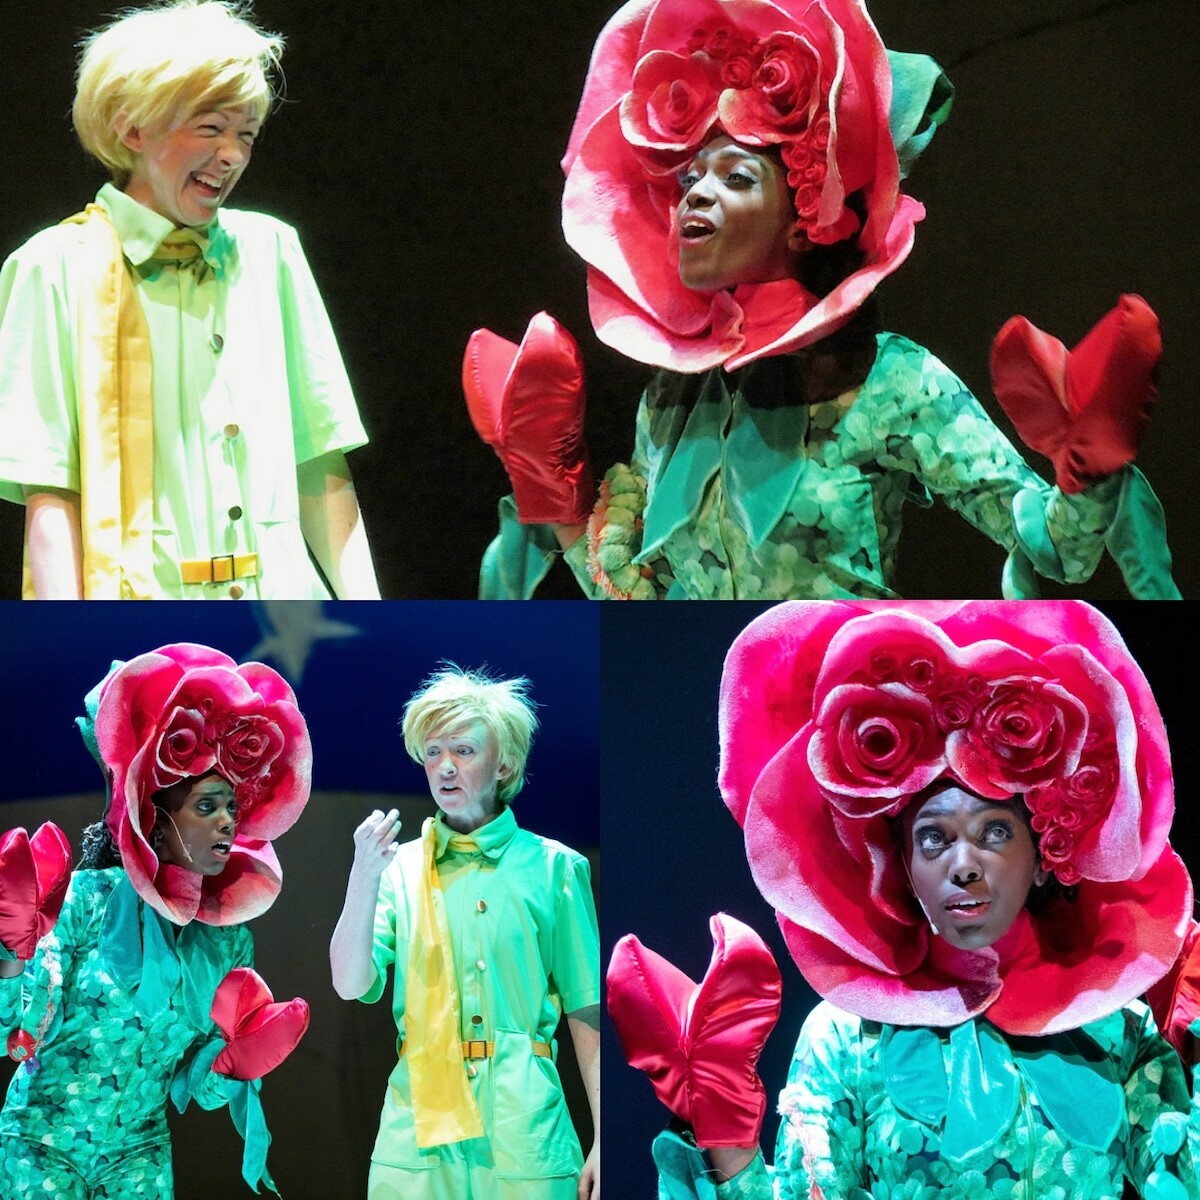 A collage of  three images featuring two actors. In each image, one actor is dressed as a flower and the other where's a bright yellow shirt, scarf with messy hair.